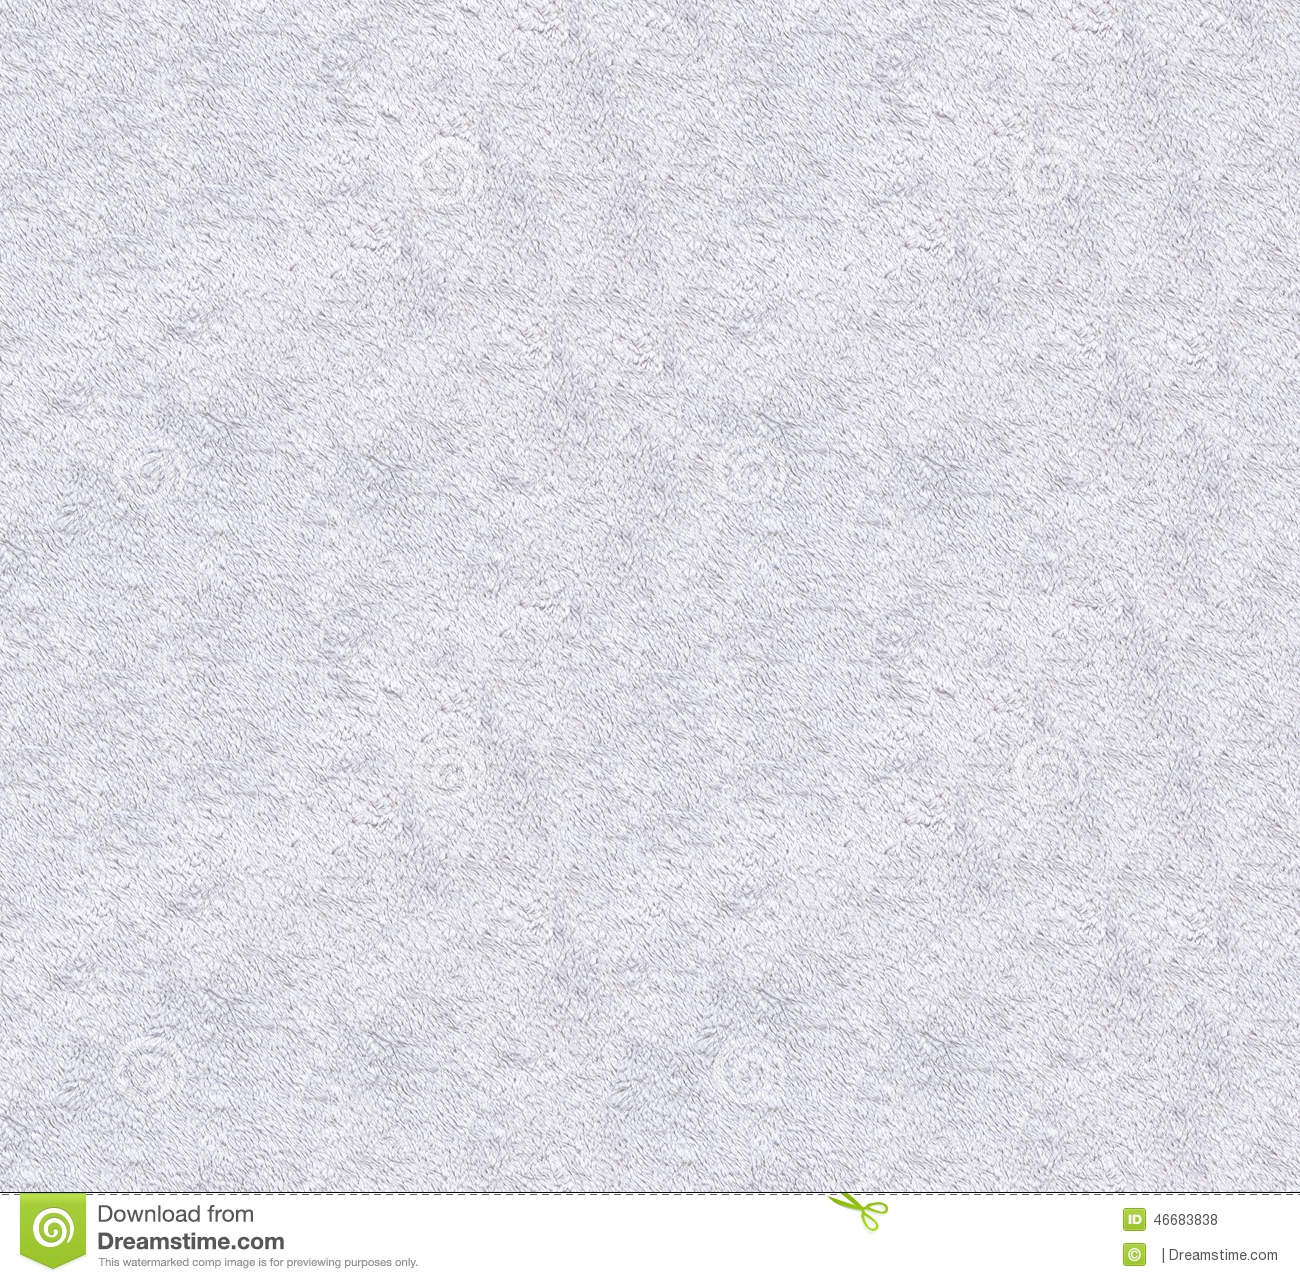 White Natural Plush Textured Fabric Macro Background